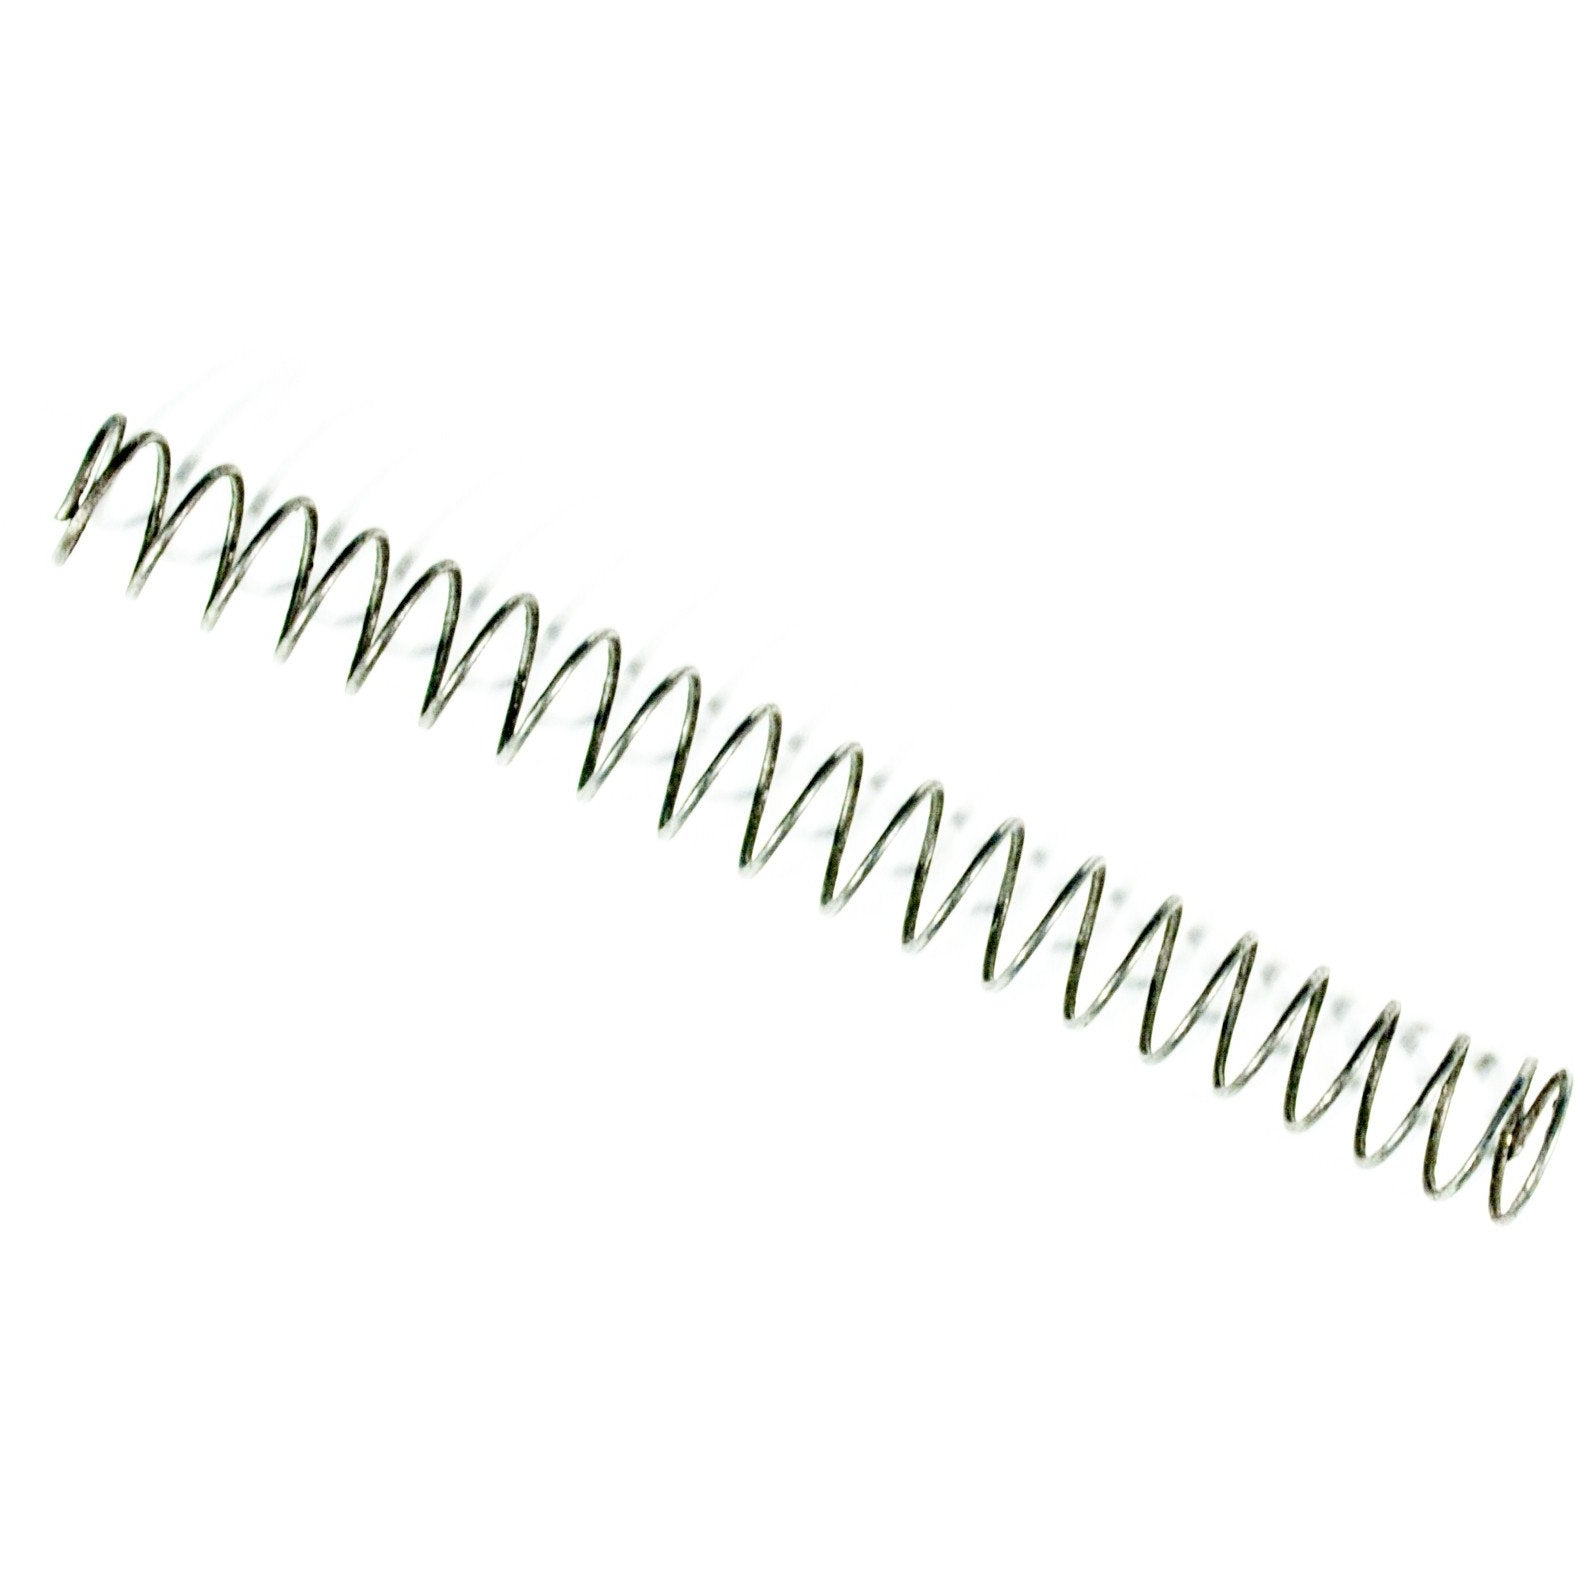 Savage 1907 32 ACP Recoil Spring,Gunsmith's Parts- Canada Brass